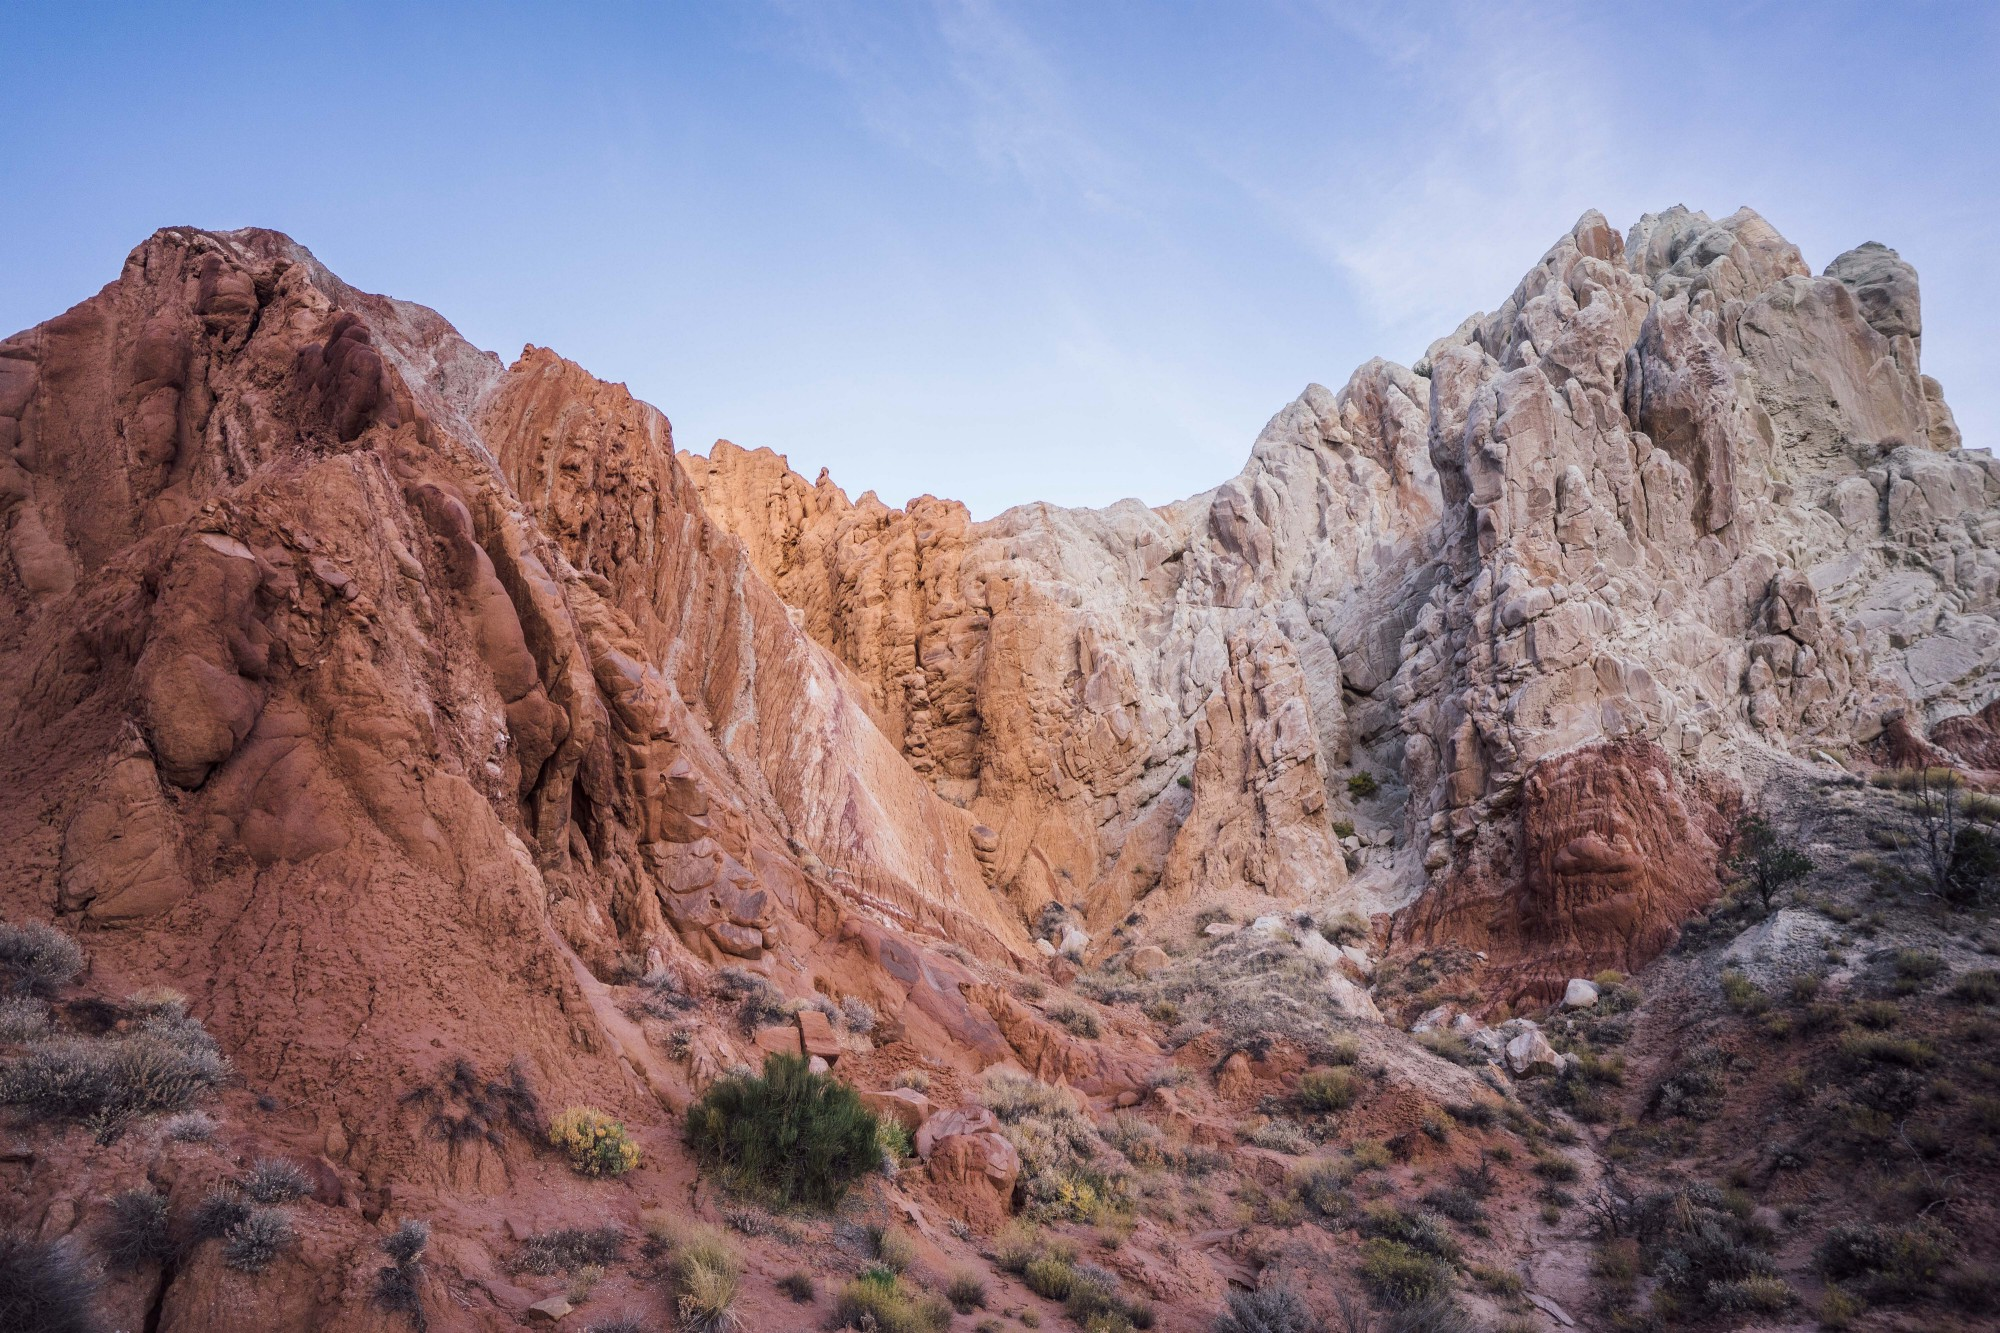 - Approaching the Cottownwood Narrows along the Cottonwood Road Scenic Backway, you are surrounded by an otherworldly landscape of colorful sandstone and rock formations.